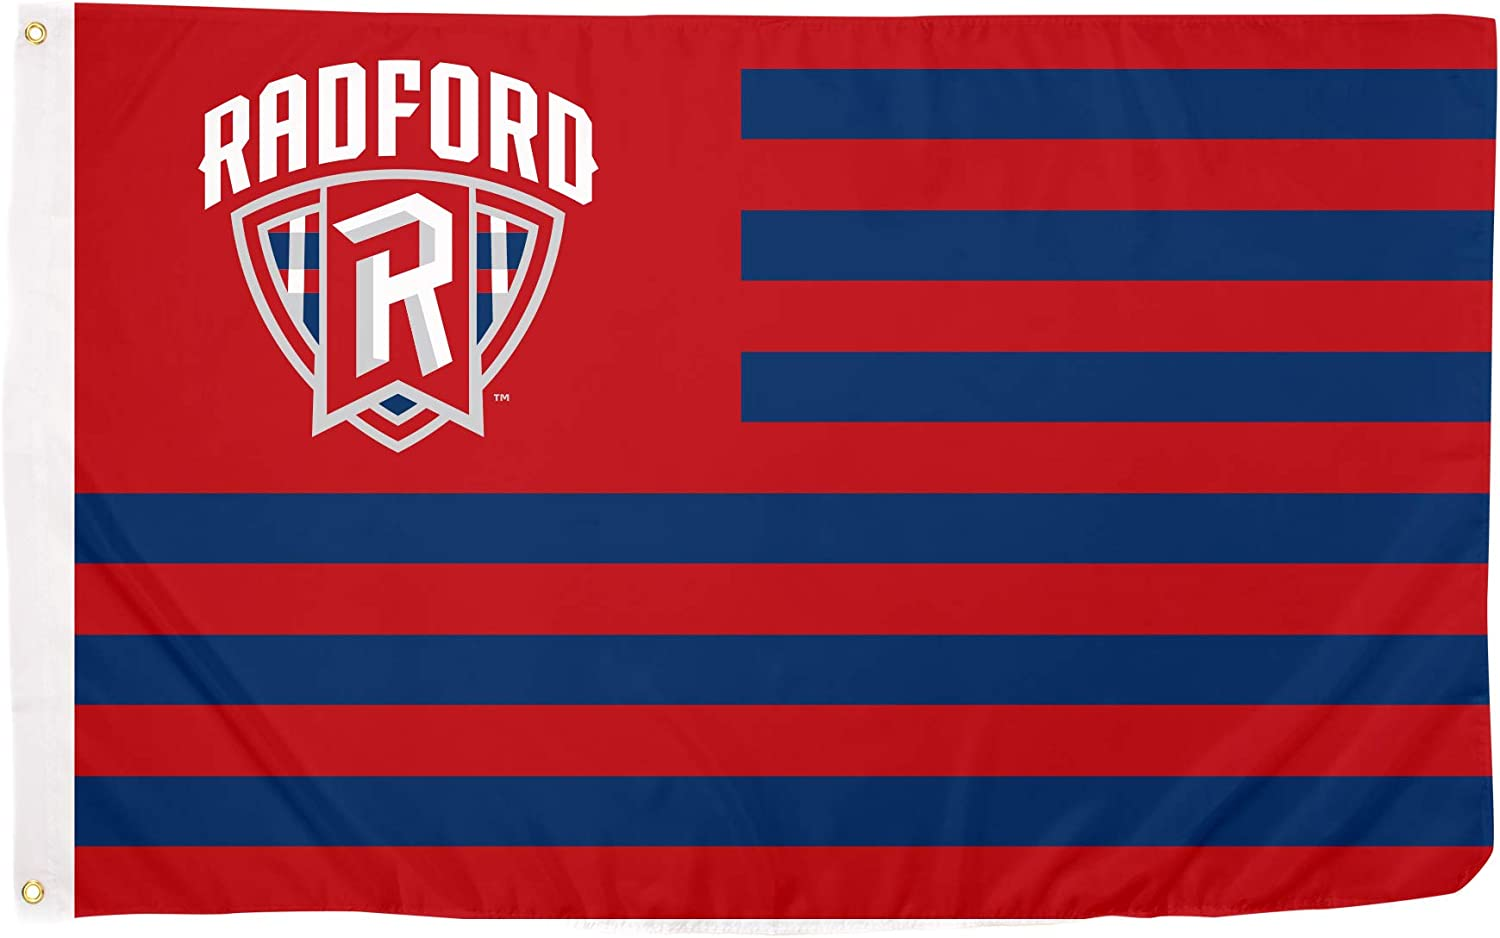 Desert Cactus Radford University Highlanders NCAA 100% Polyester Indoor Outdoor 3 feet x 5 feet Flag (Nation)